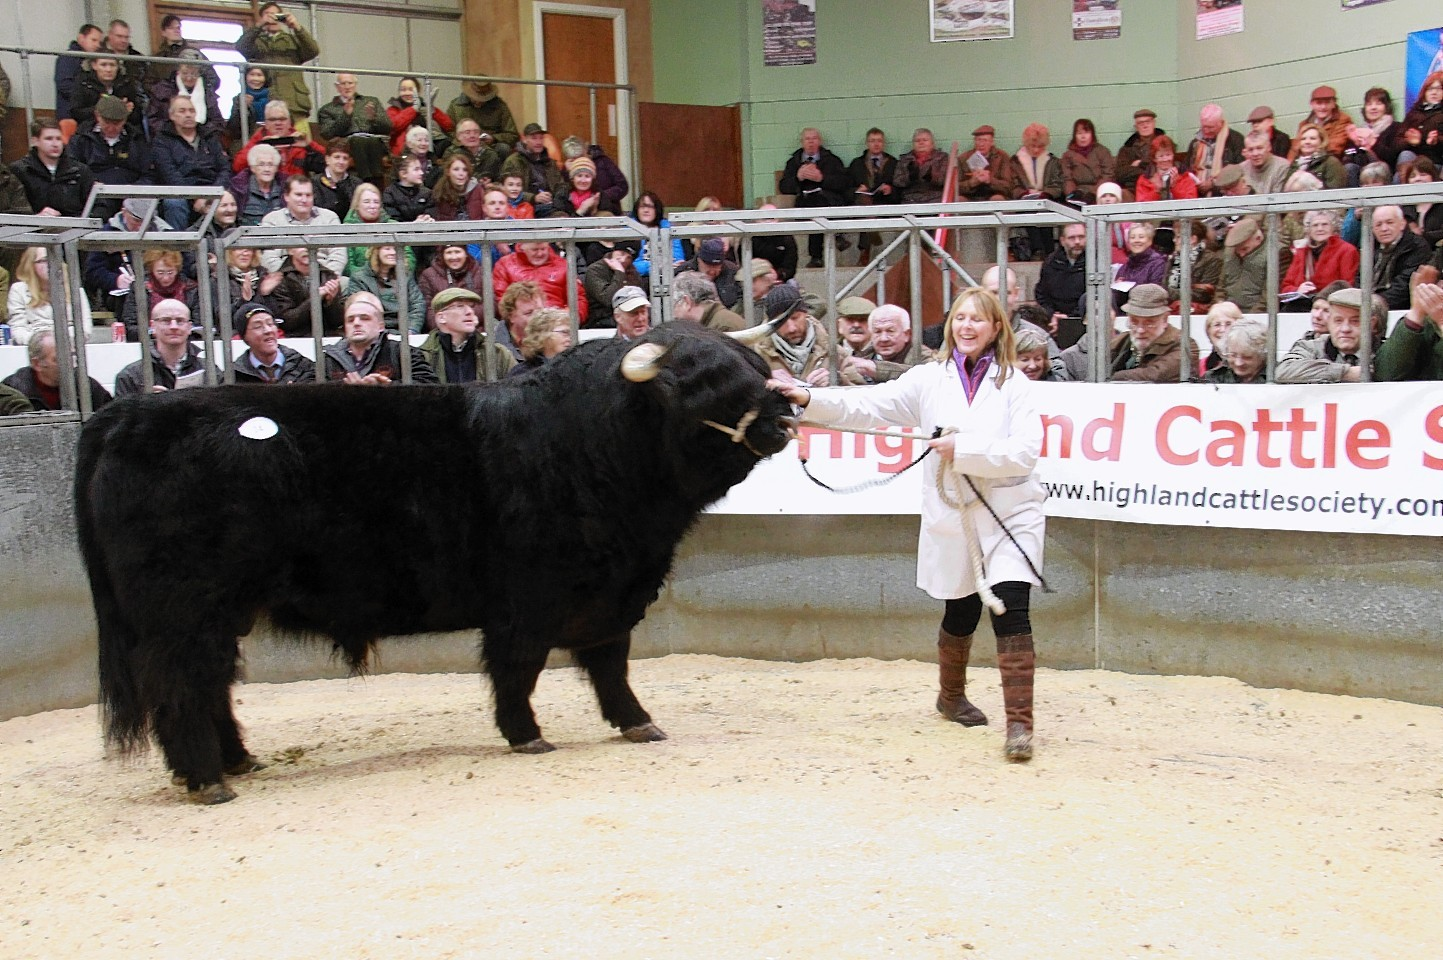 The mart at Oban stages pedigree Highland cattle sales.